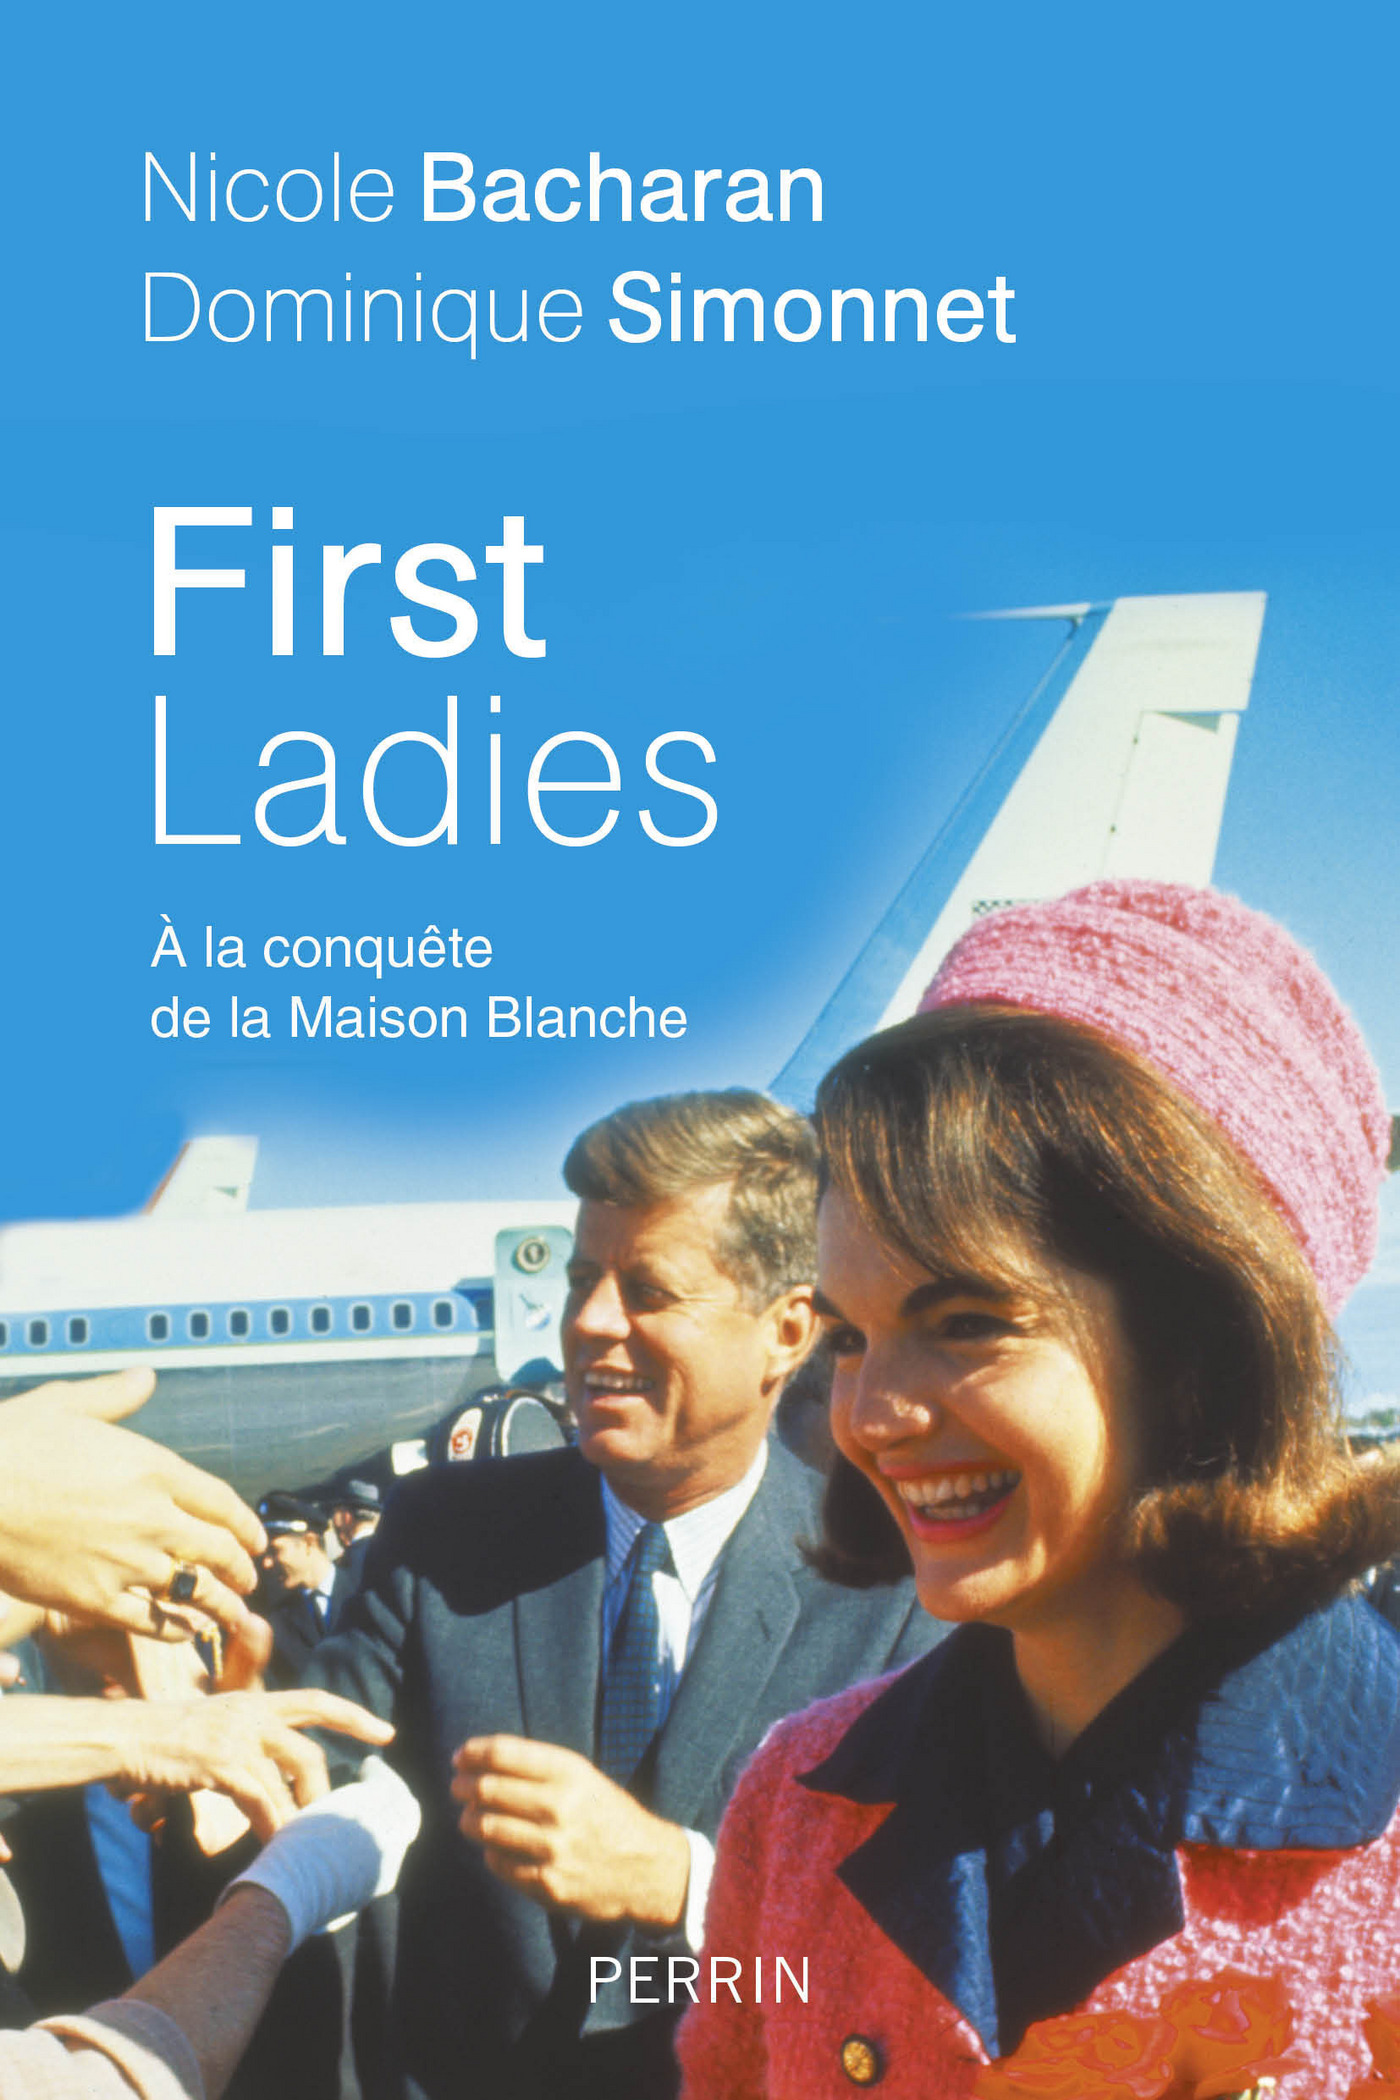 First Ladies. A la conquête de la Maison Blanche (ebook)